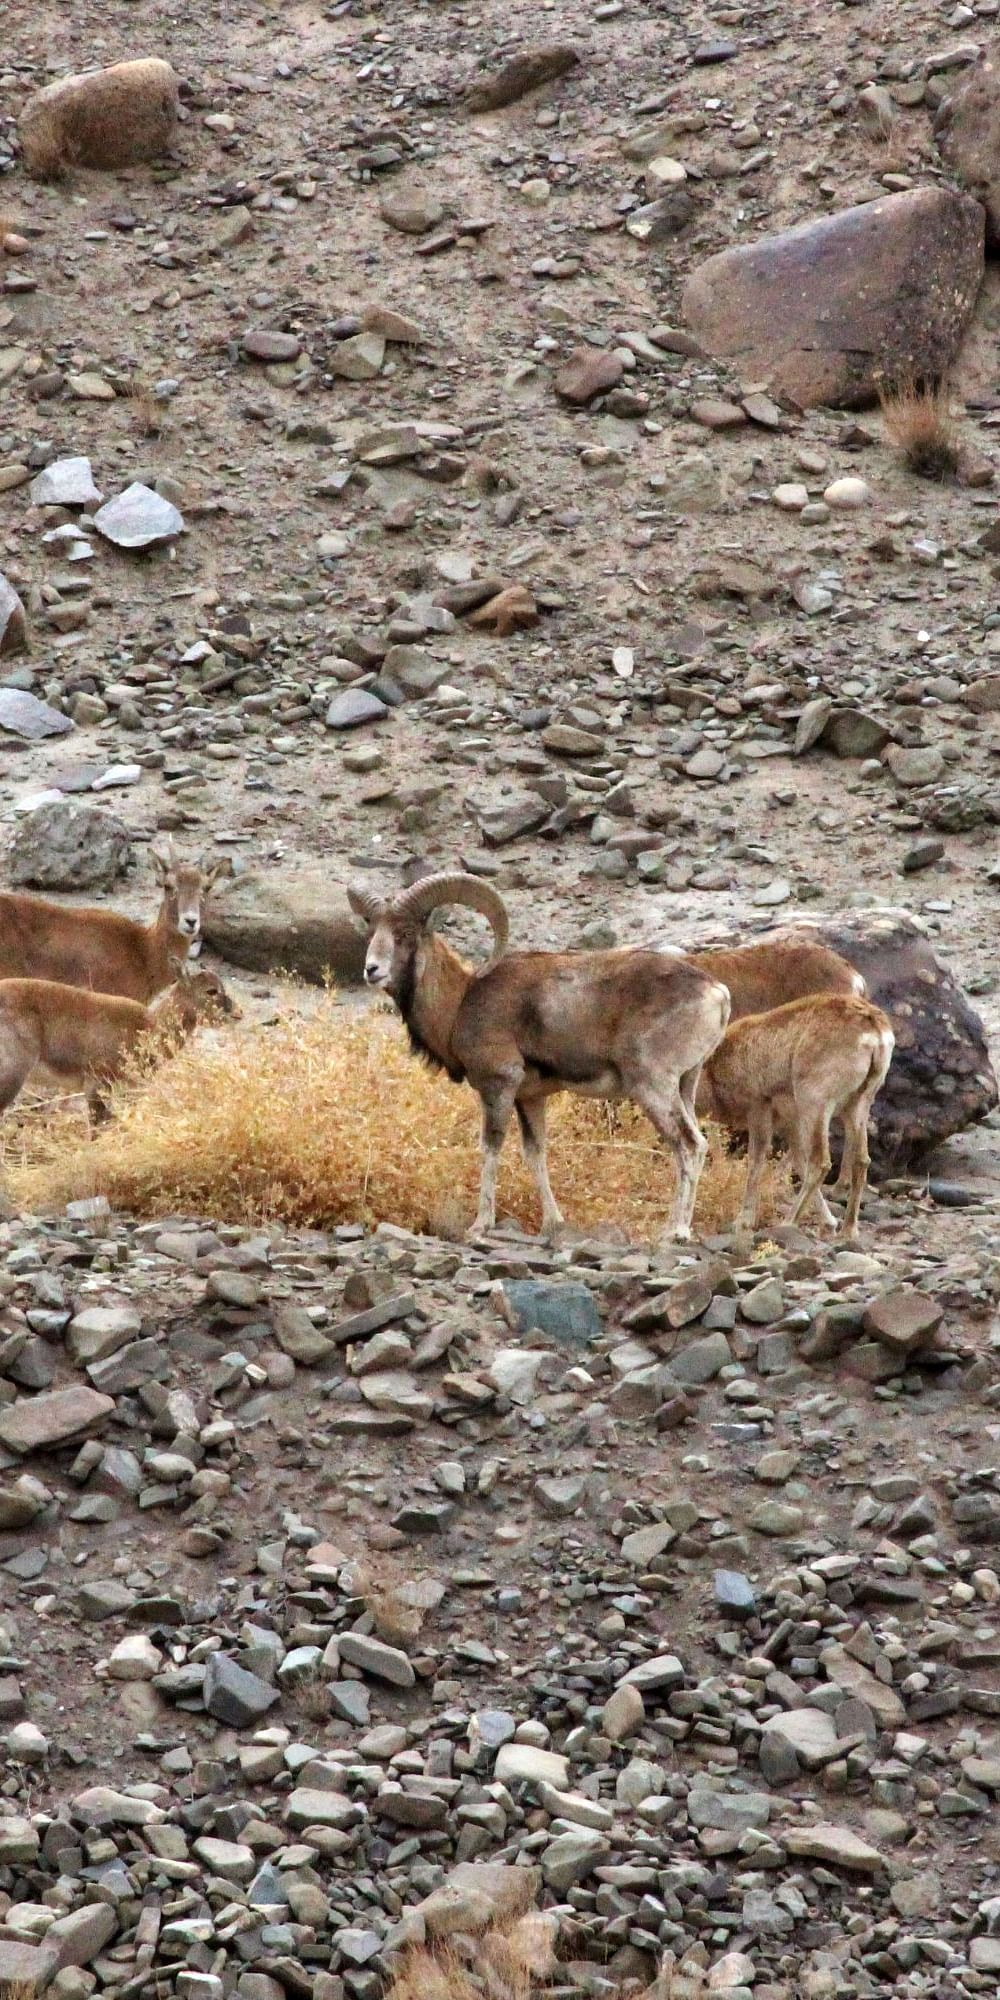 Understanding distribution, population density and conservation status of the endemic and threatened Ladakh urial Ovis orientalis vignei